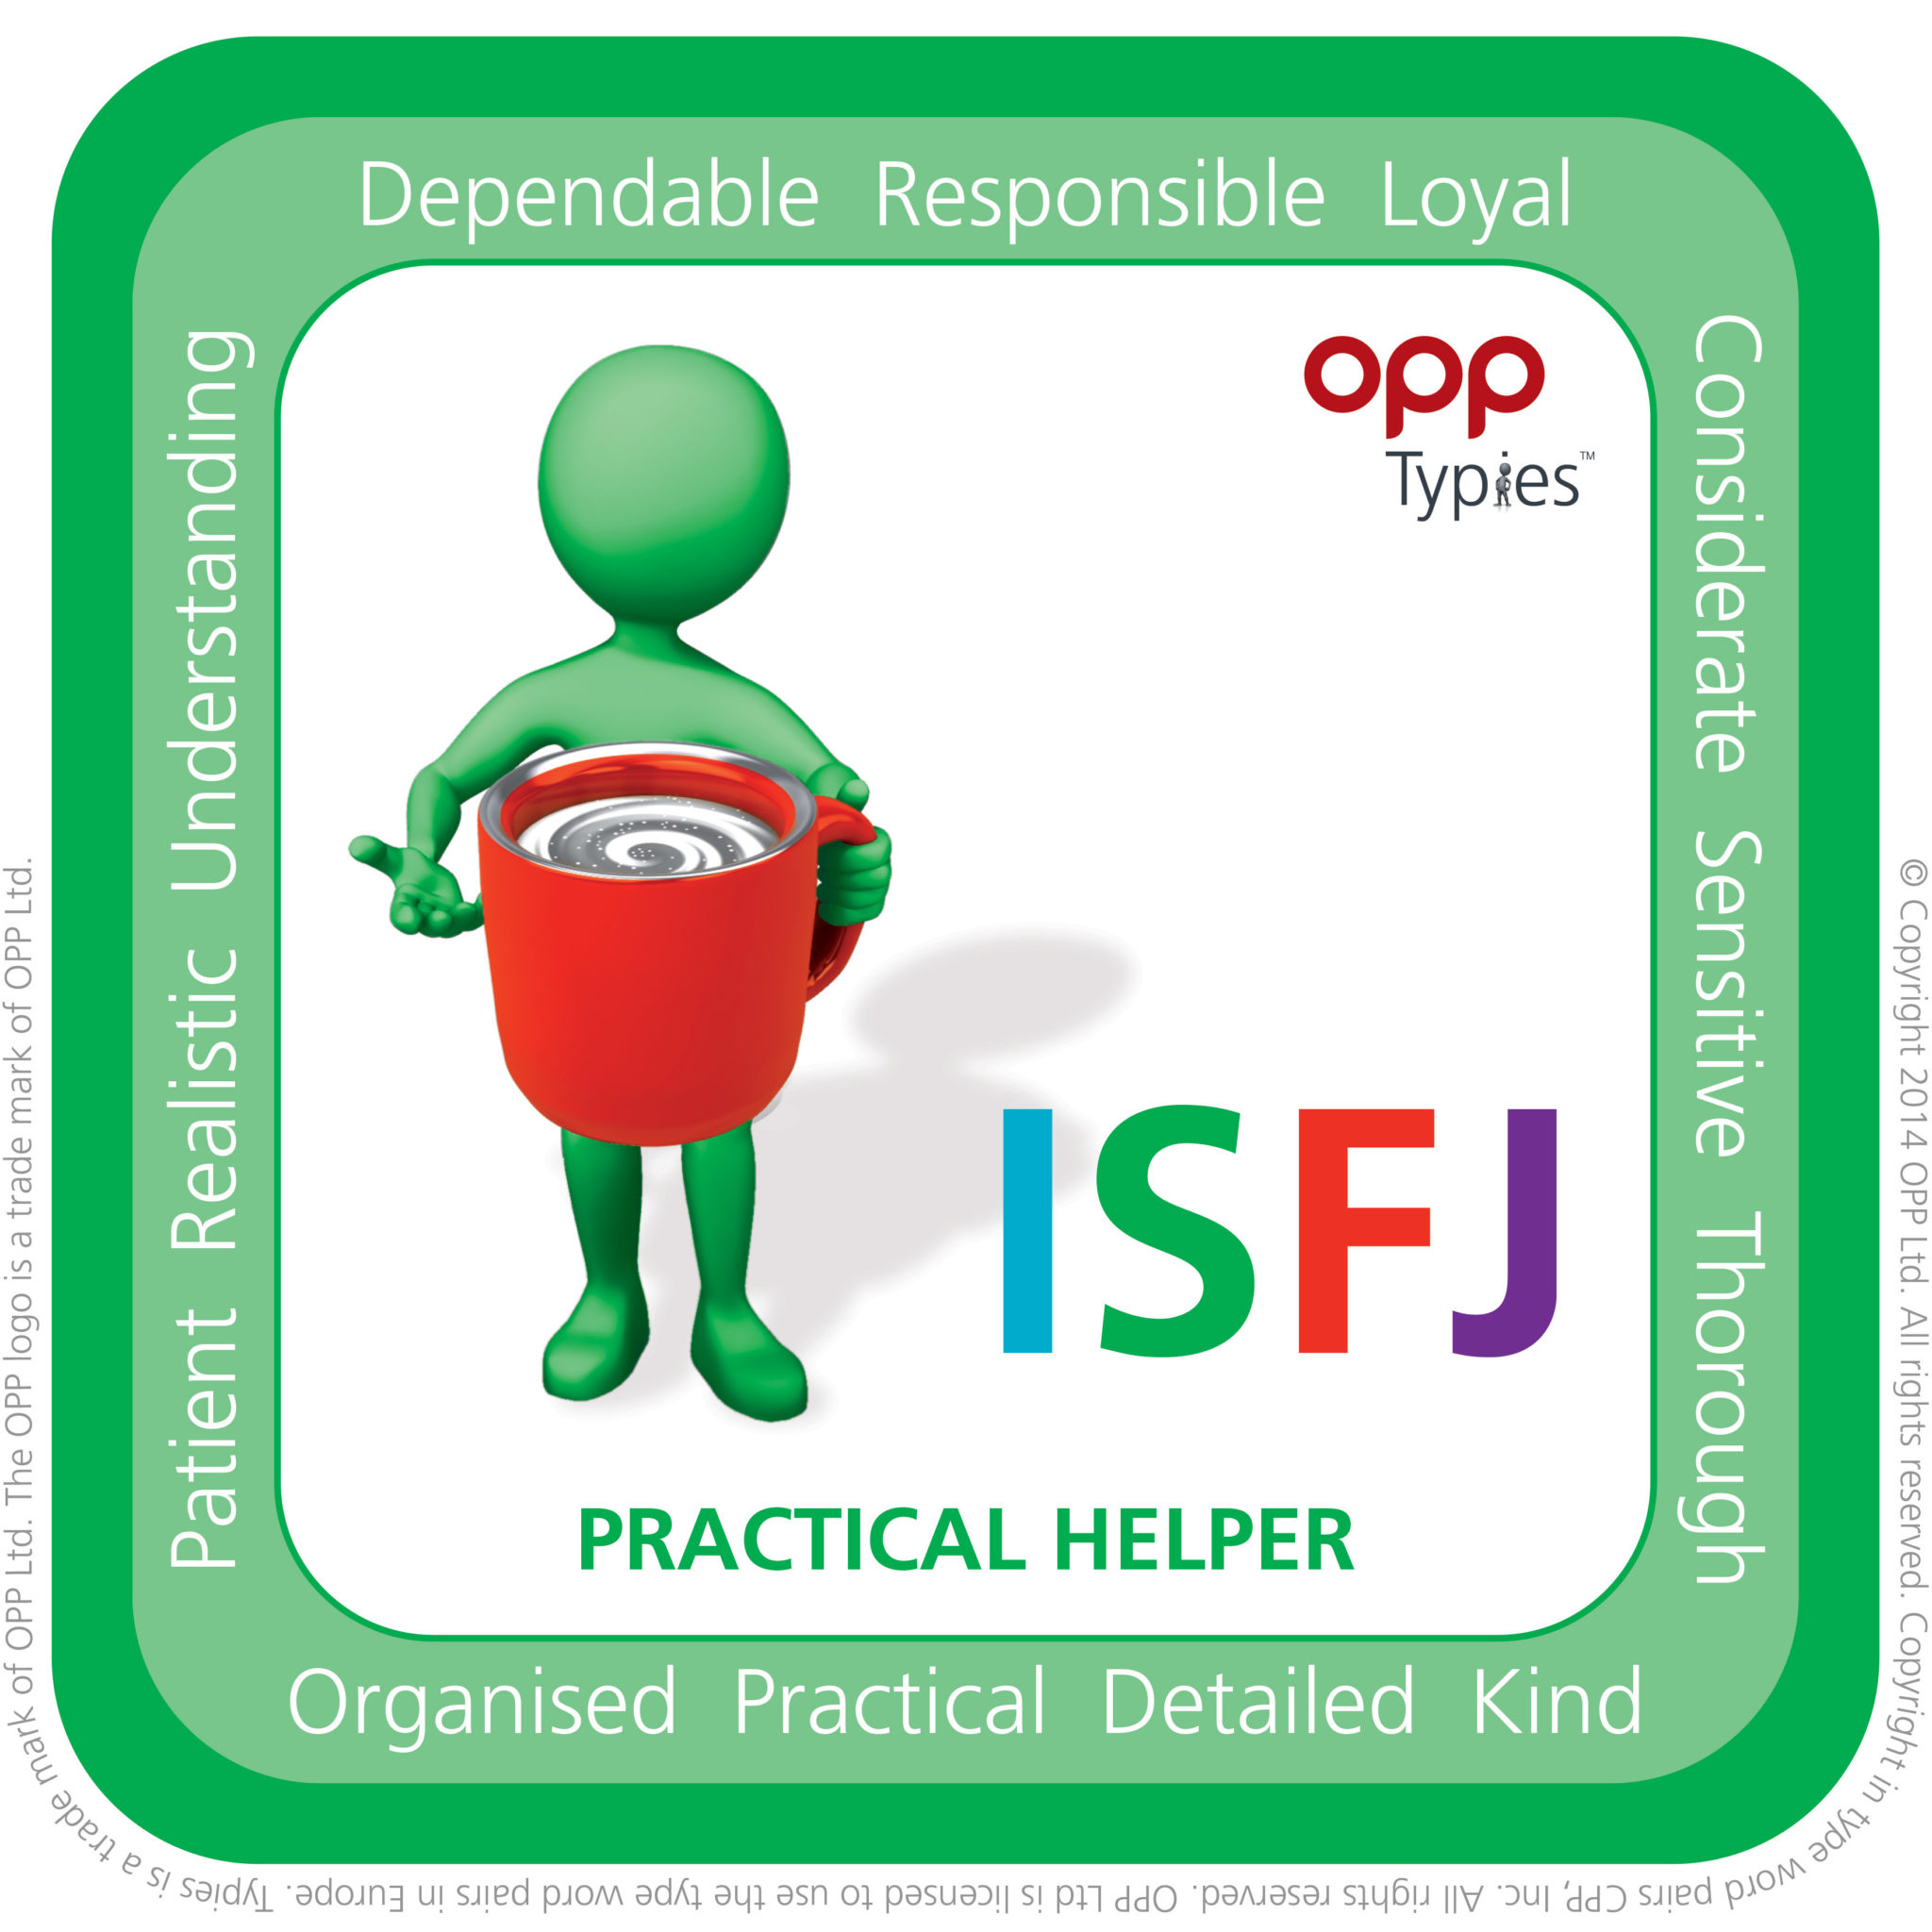 ISFJ Typie, willerby hill hr, hr advice hull, mbti east yorkshire, mbti hull